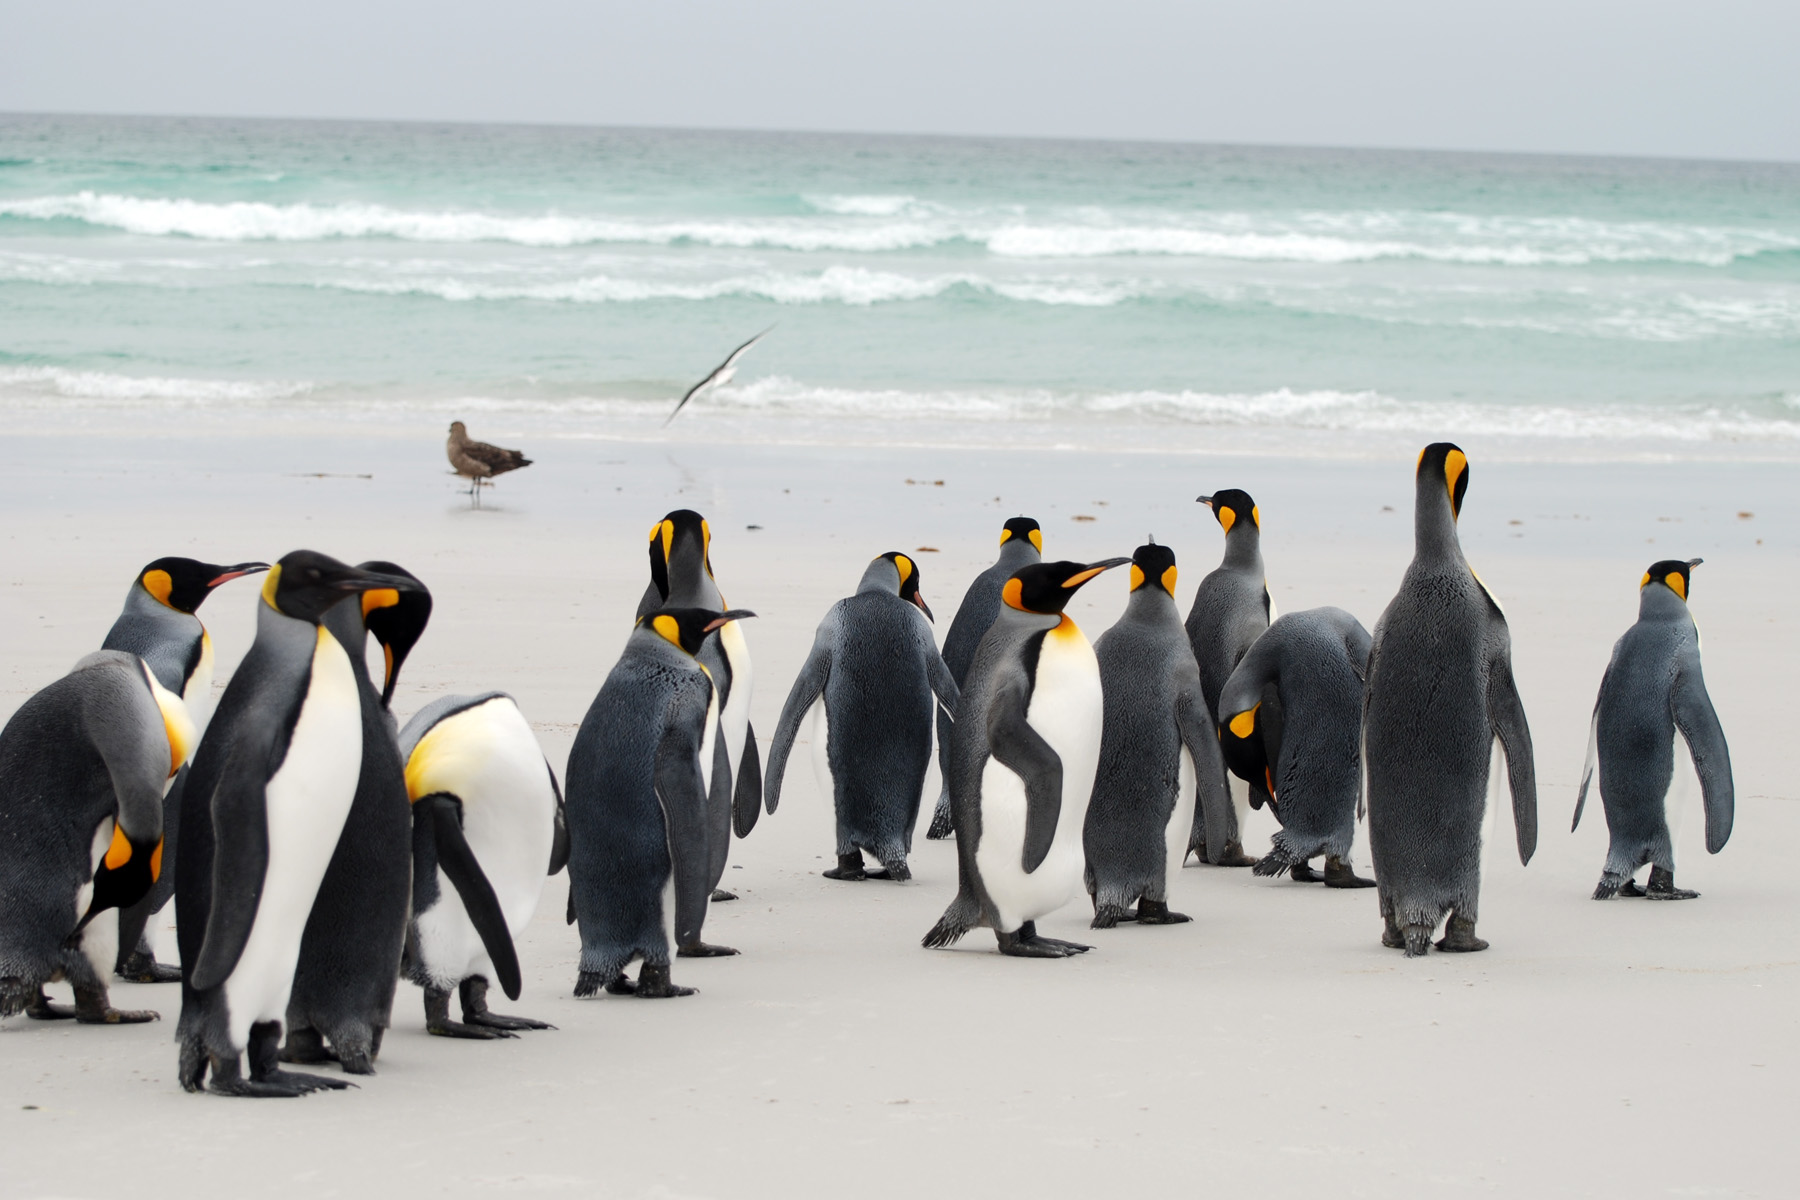 Volunteer Point, Falkland Islands by Don Faulkner (CC)